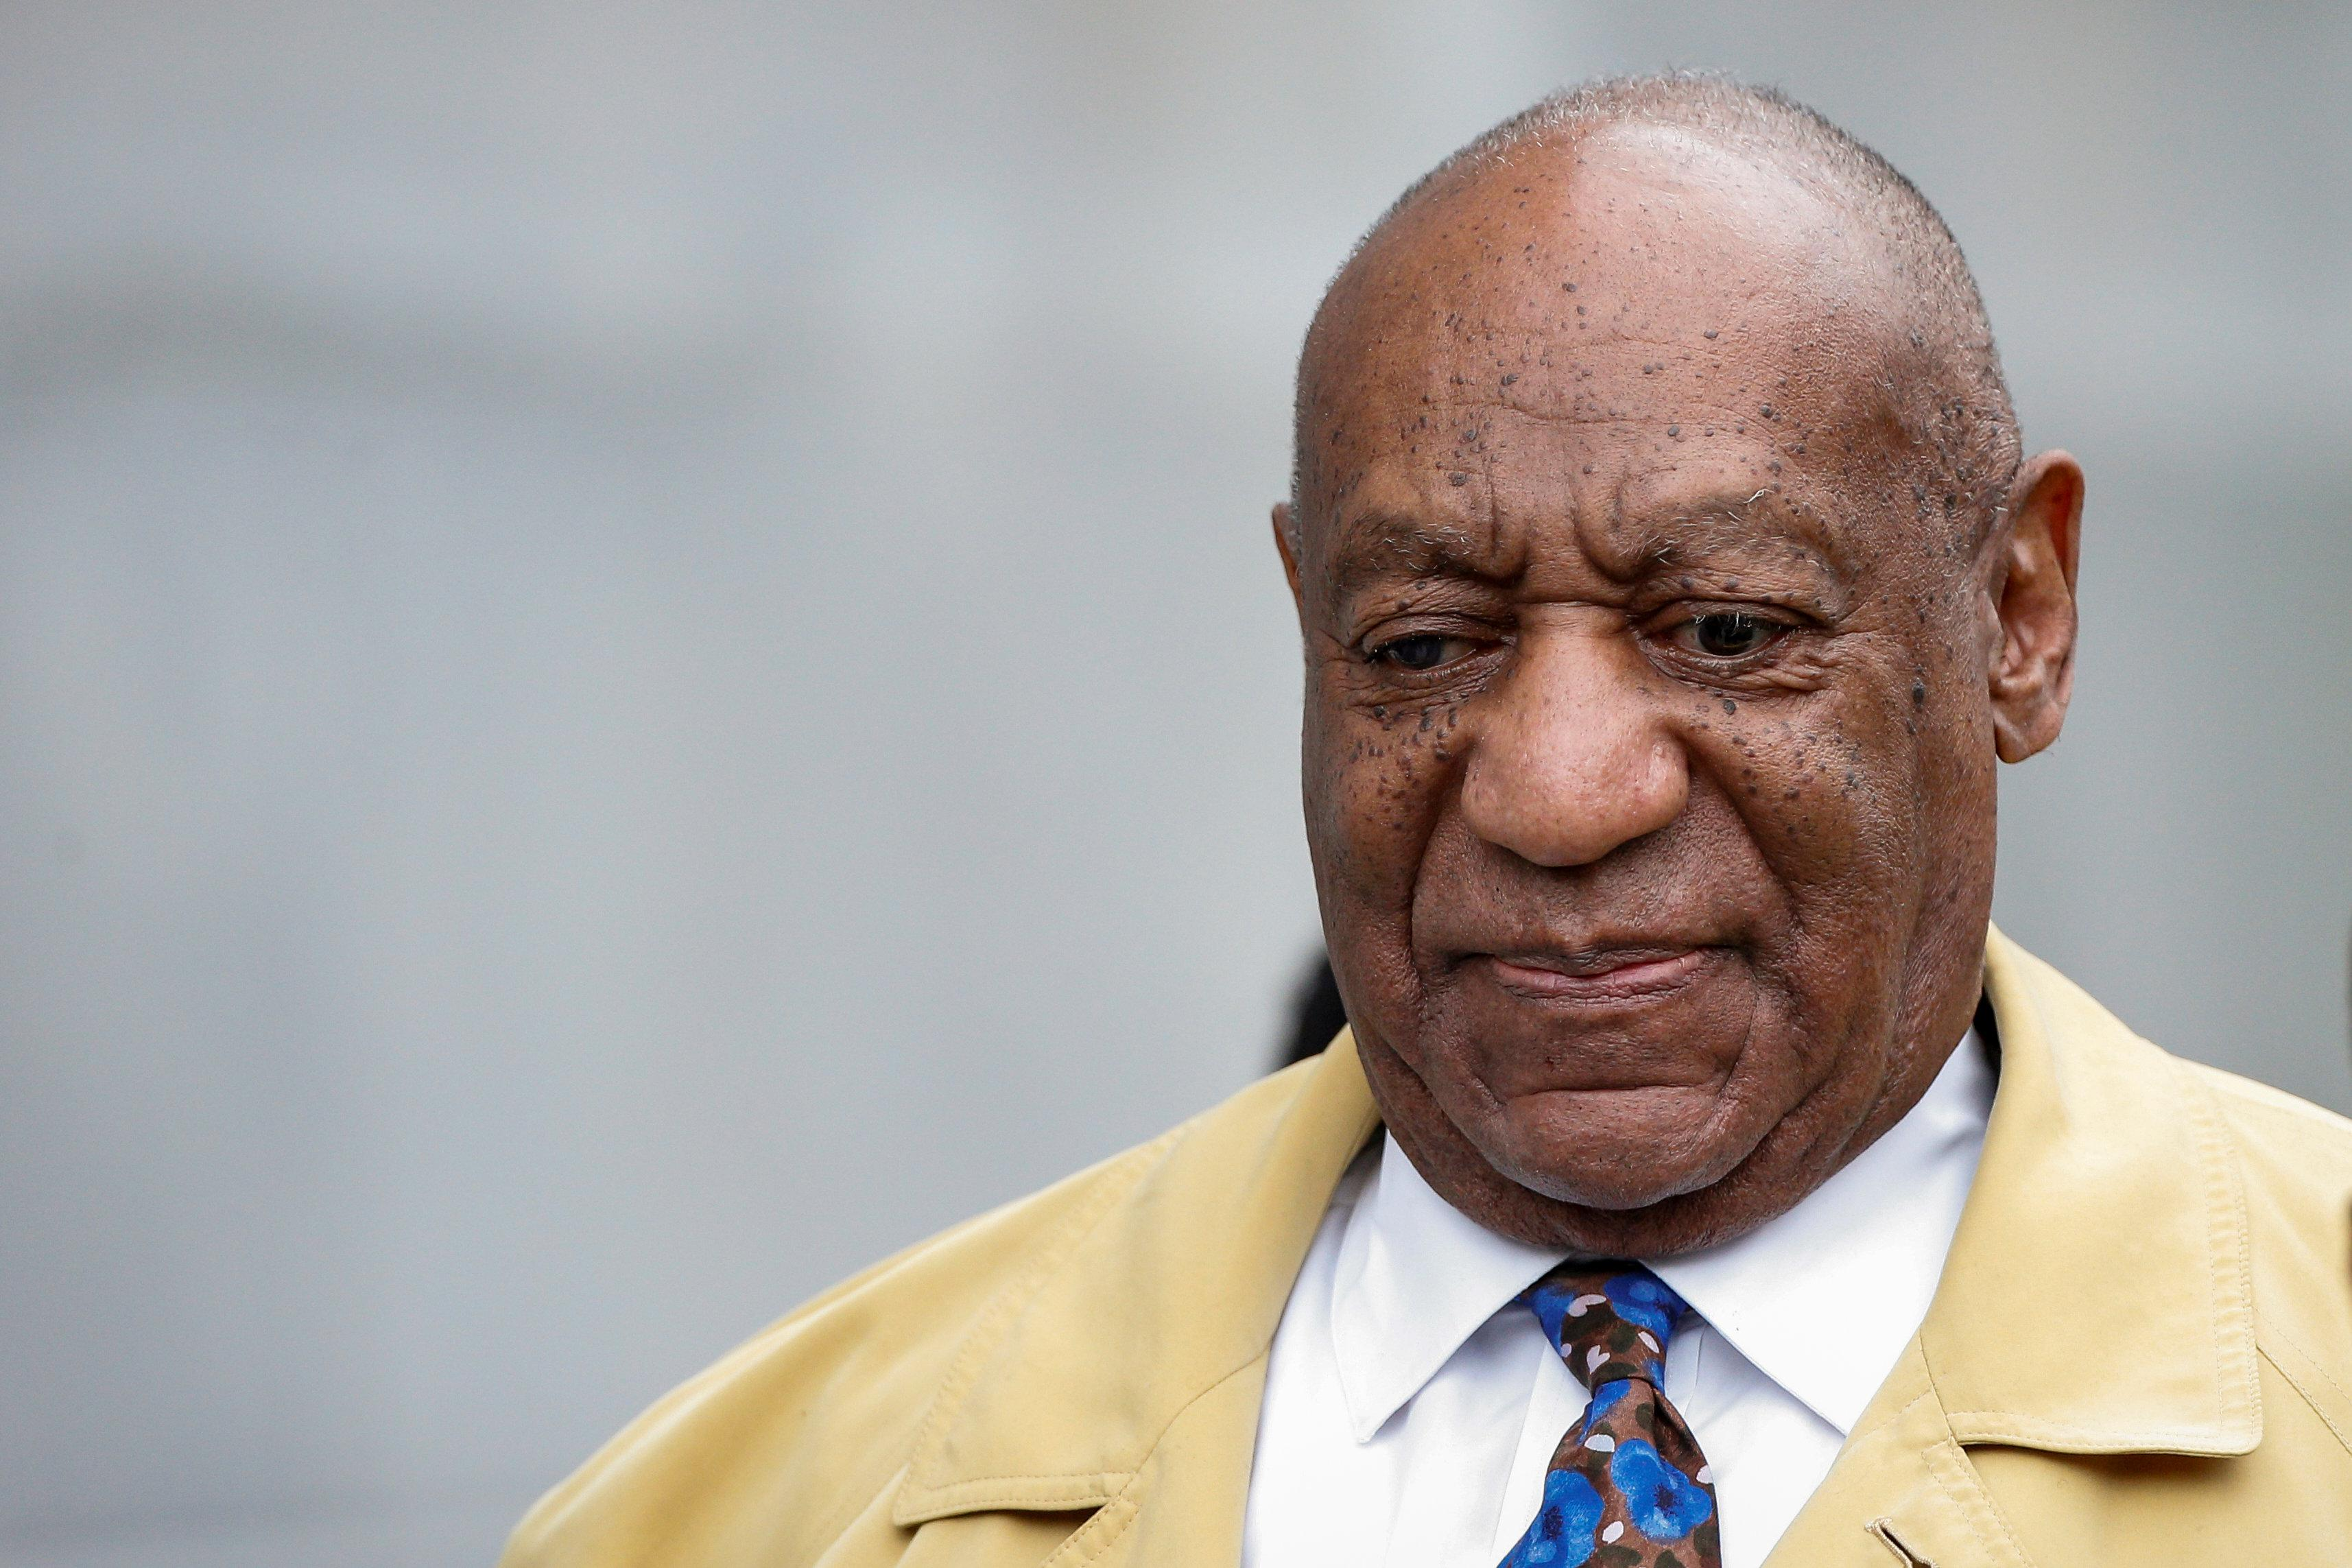 Actor and comedian Bill Cosby departs after a day of closing arguments at his sexual assault retrial at the Montgomery County Courthouse in Norristown, Pennsylvania, U.S. April 24, 2018.  Brendan McDermid